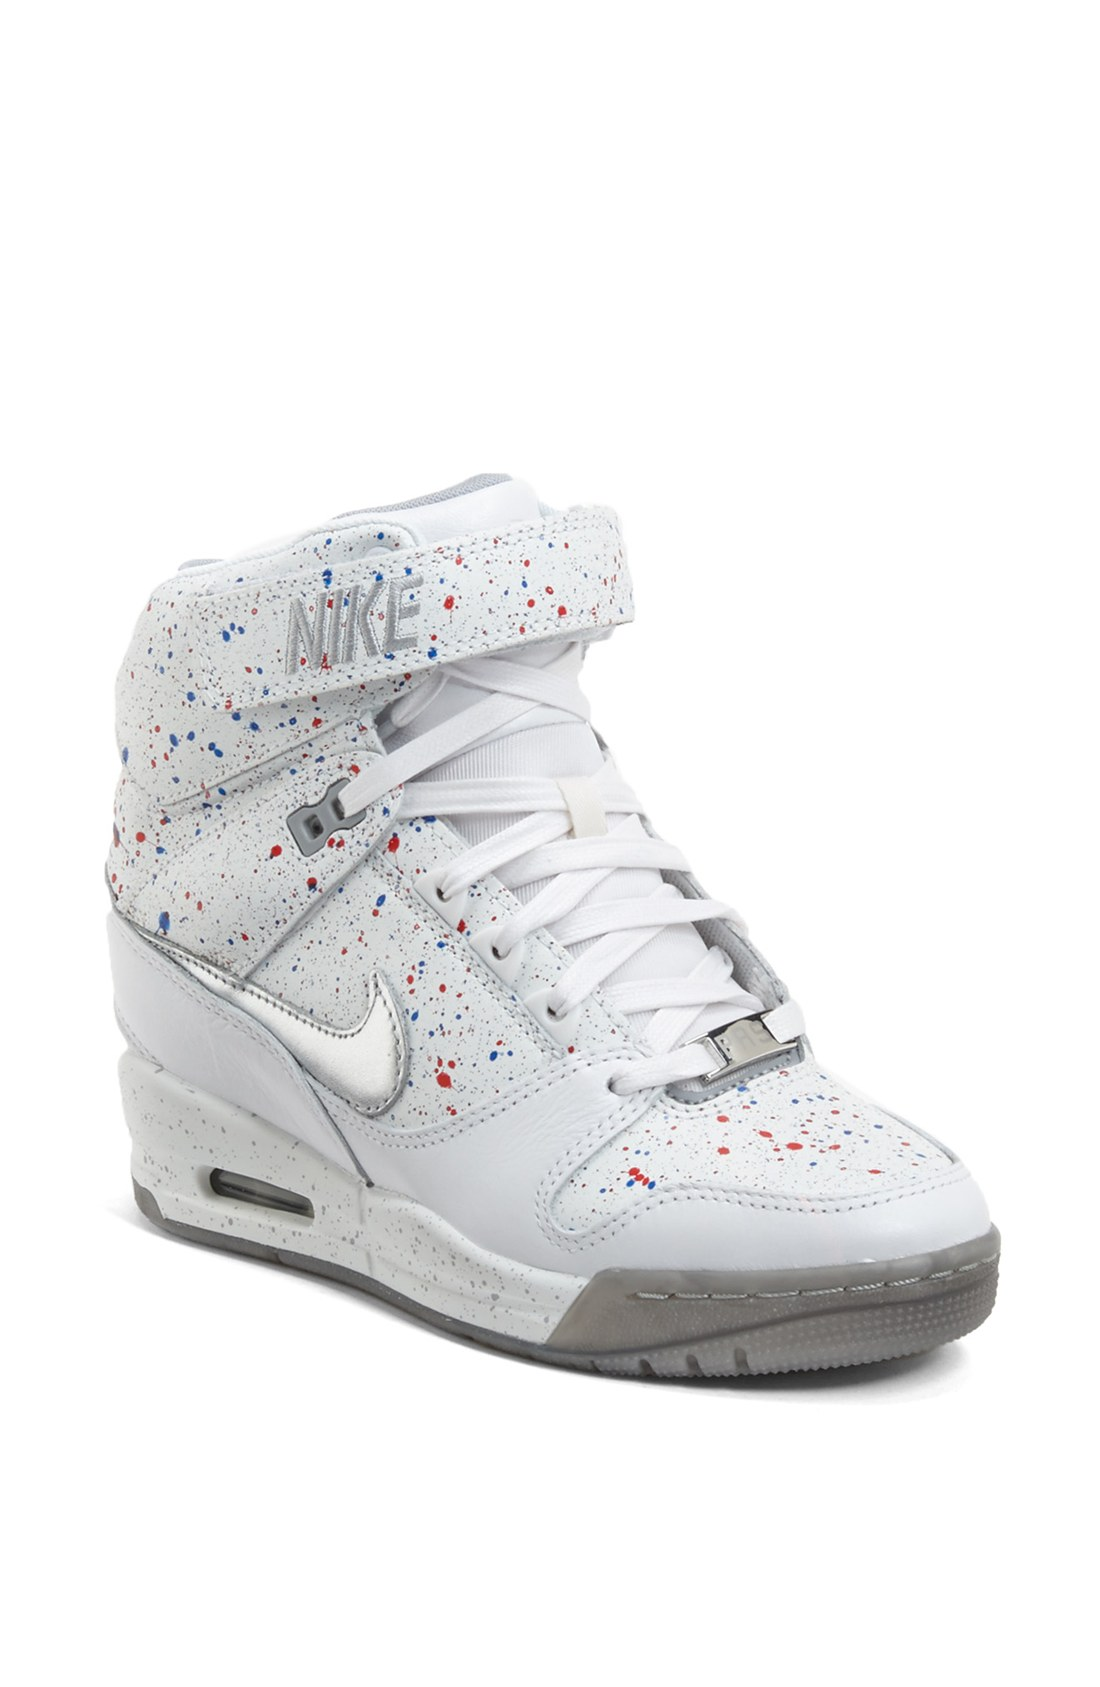 ... nike air revolution sky high sneakers white ... 0ff045da8